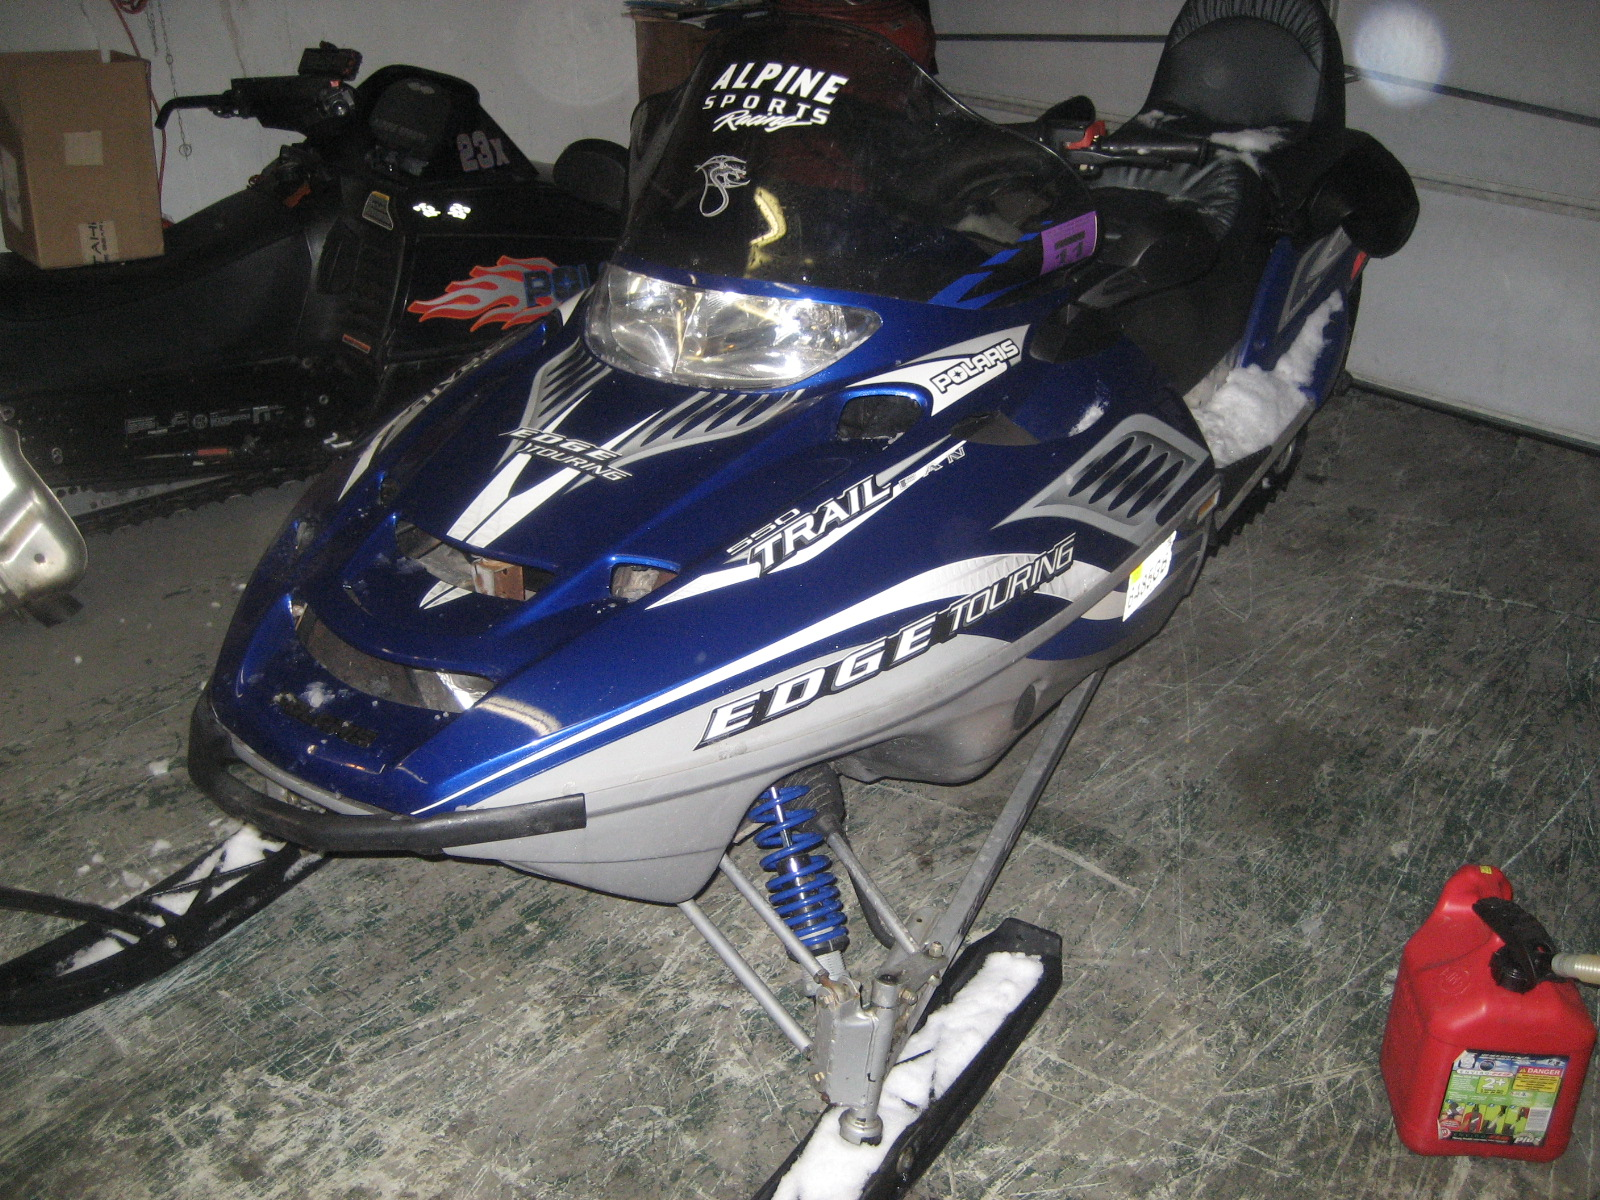 2 up snowmobile for sale by owner